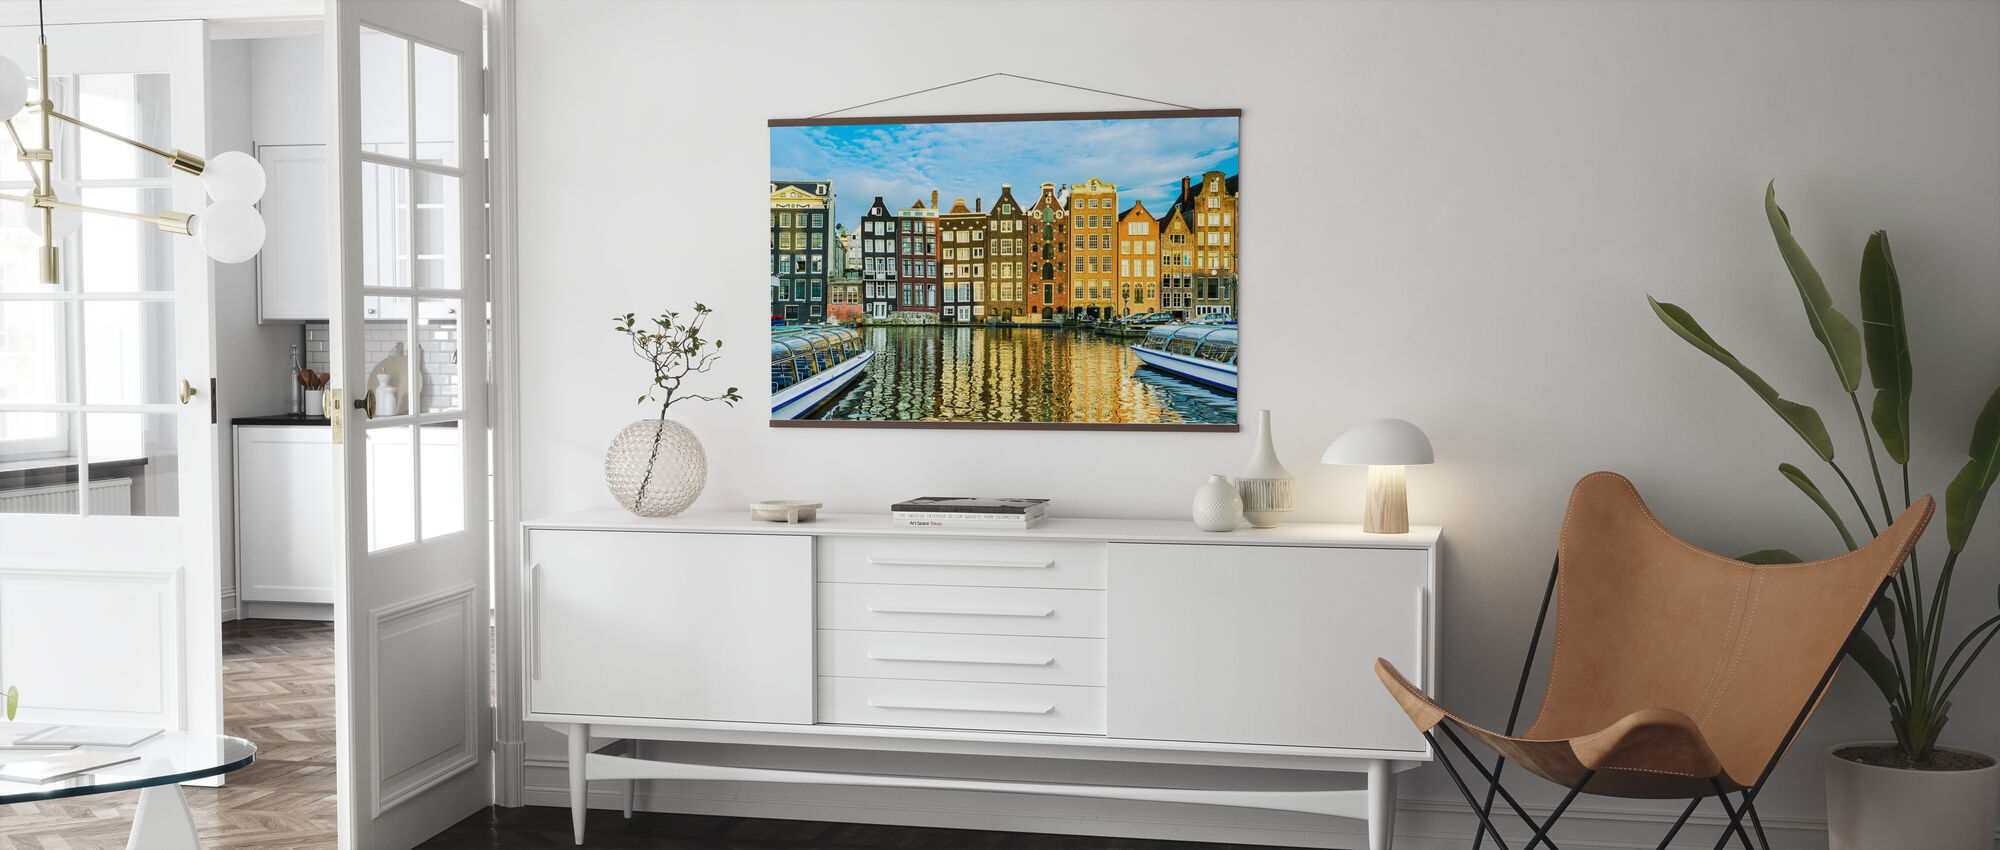 Traditional Houses of Amsterdam, Netherlands - Poster - Living Room